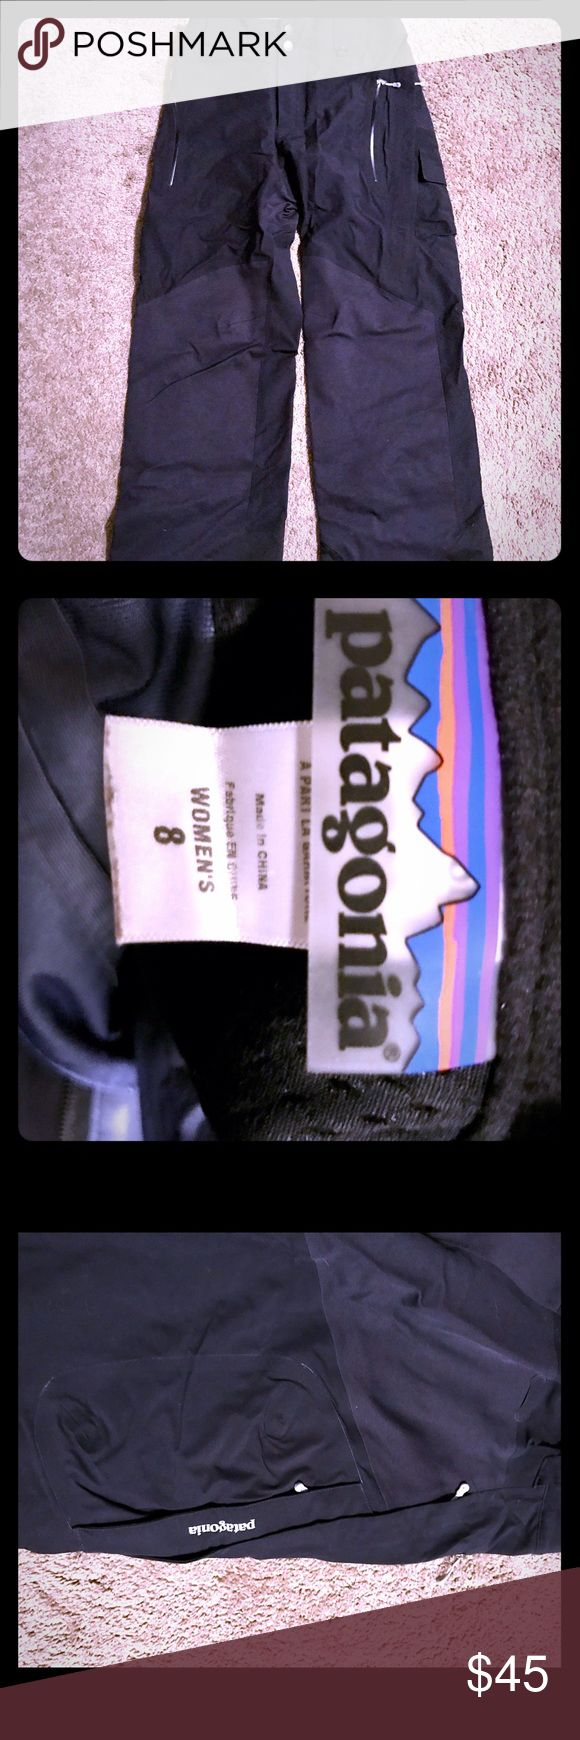 Gorgeous Patagonia ski/snowboarding pants! Size 8 Gorgeous Patagonia ski/snowboarding pants! Worn a couple of times. Warm, comfortable and waterproof. Excellent condition! Size 8 Patagonia Pants